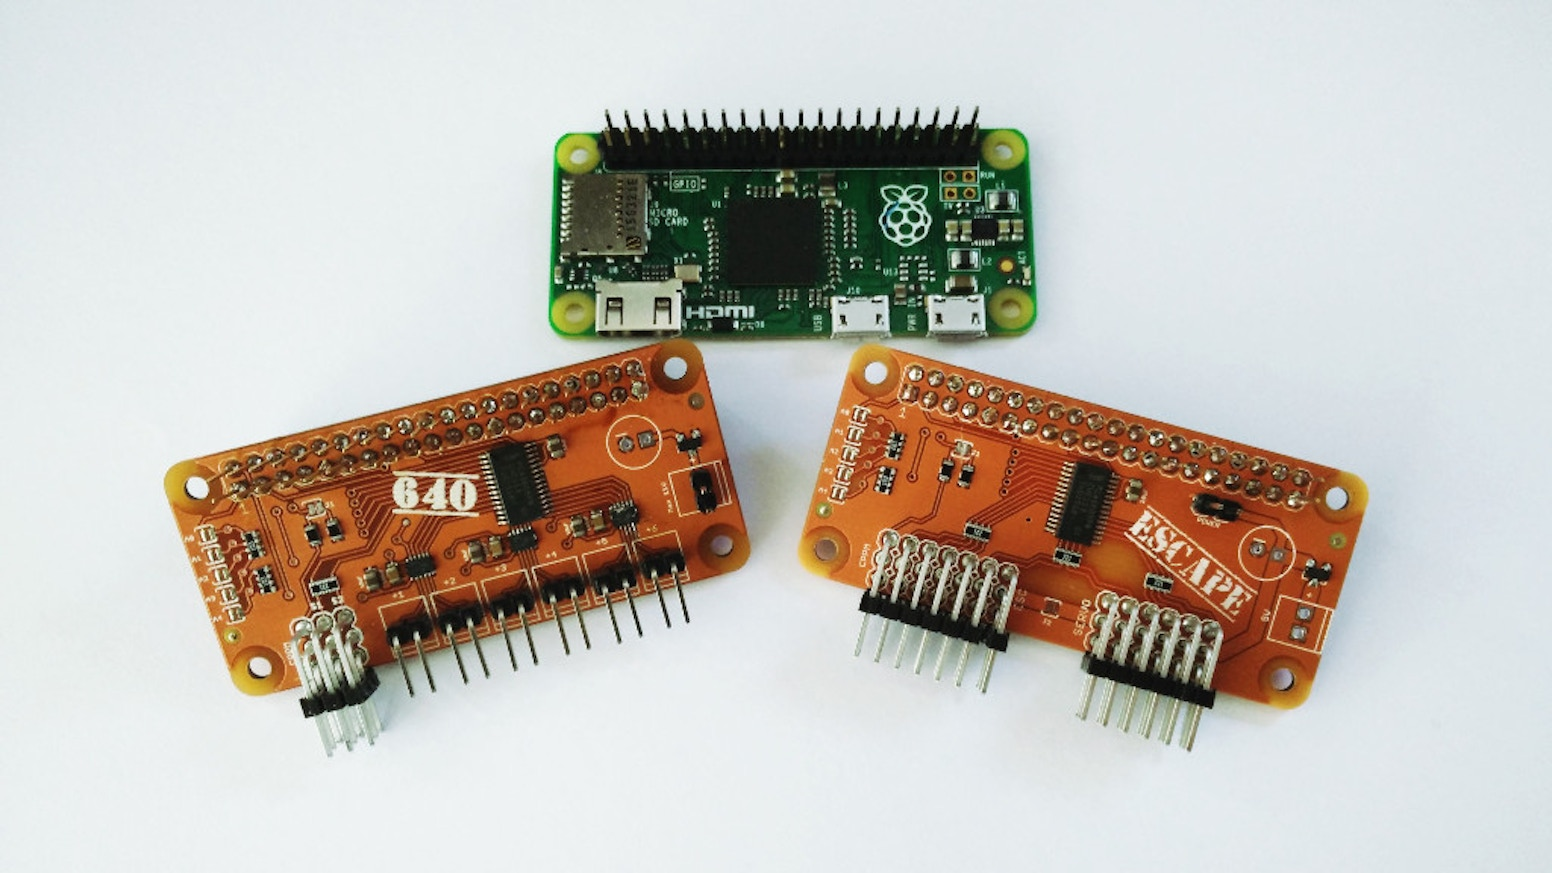 Dark Control Robot Controllers For The Raspberry Pi Zero By Barry Police Lights Circuit Electronics Forum Circuits Projects And Compact Powerful Open Source That Fit Perfectly On Your